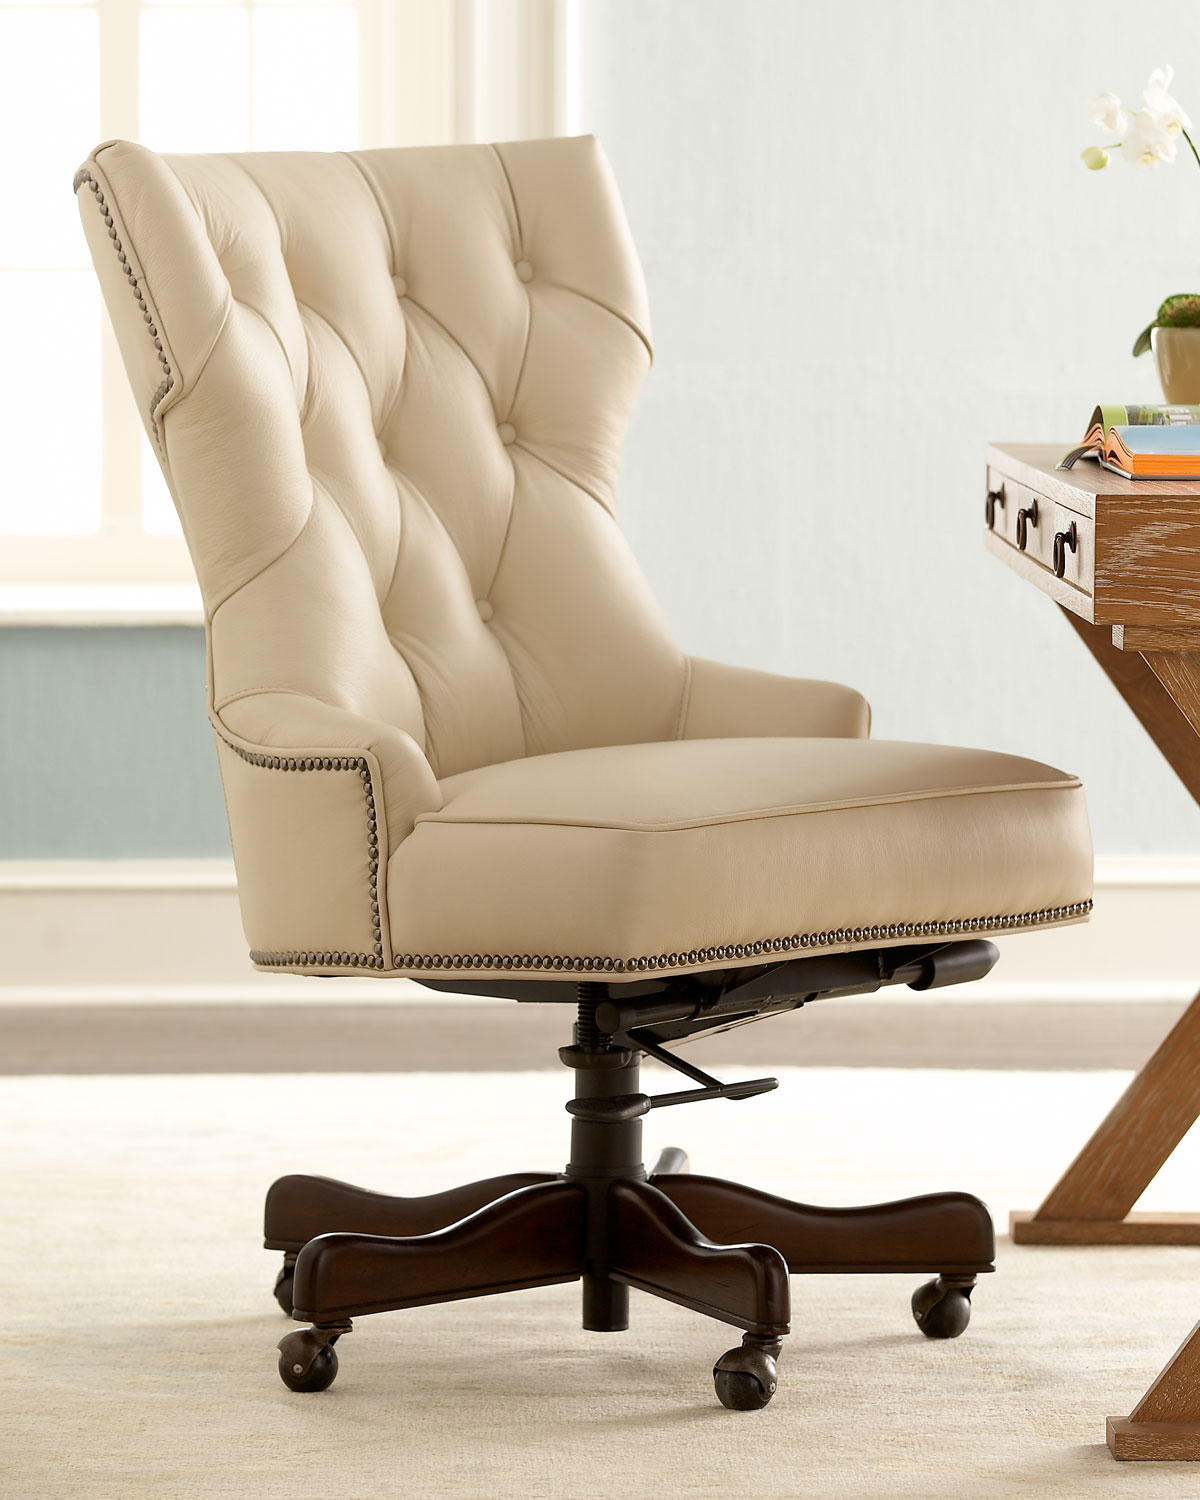 Home Chair: How To Decorate An Office At Work With Leather Chairs